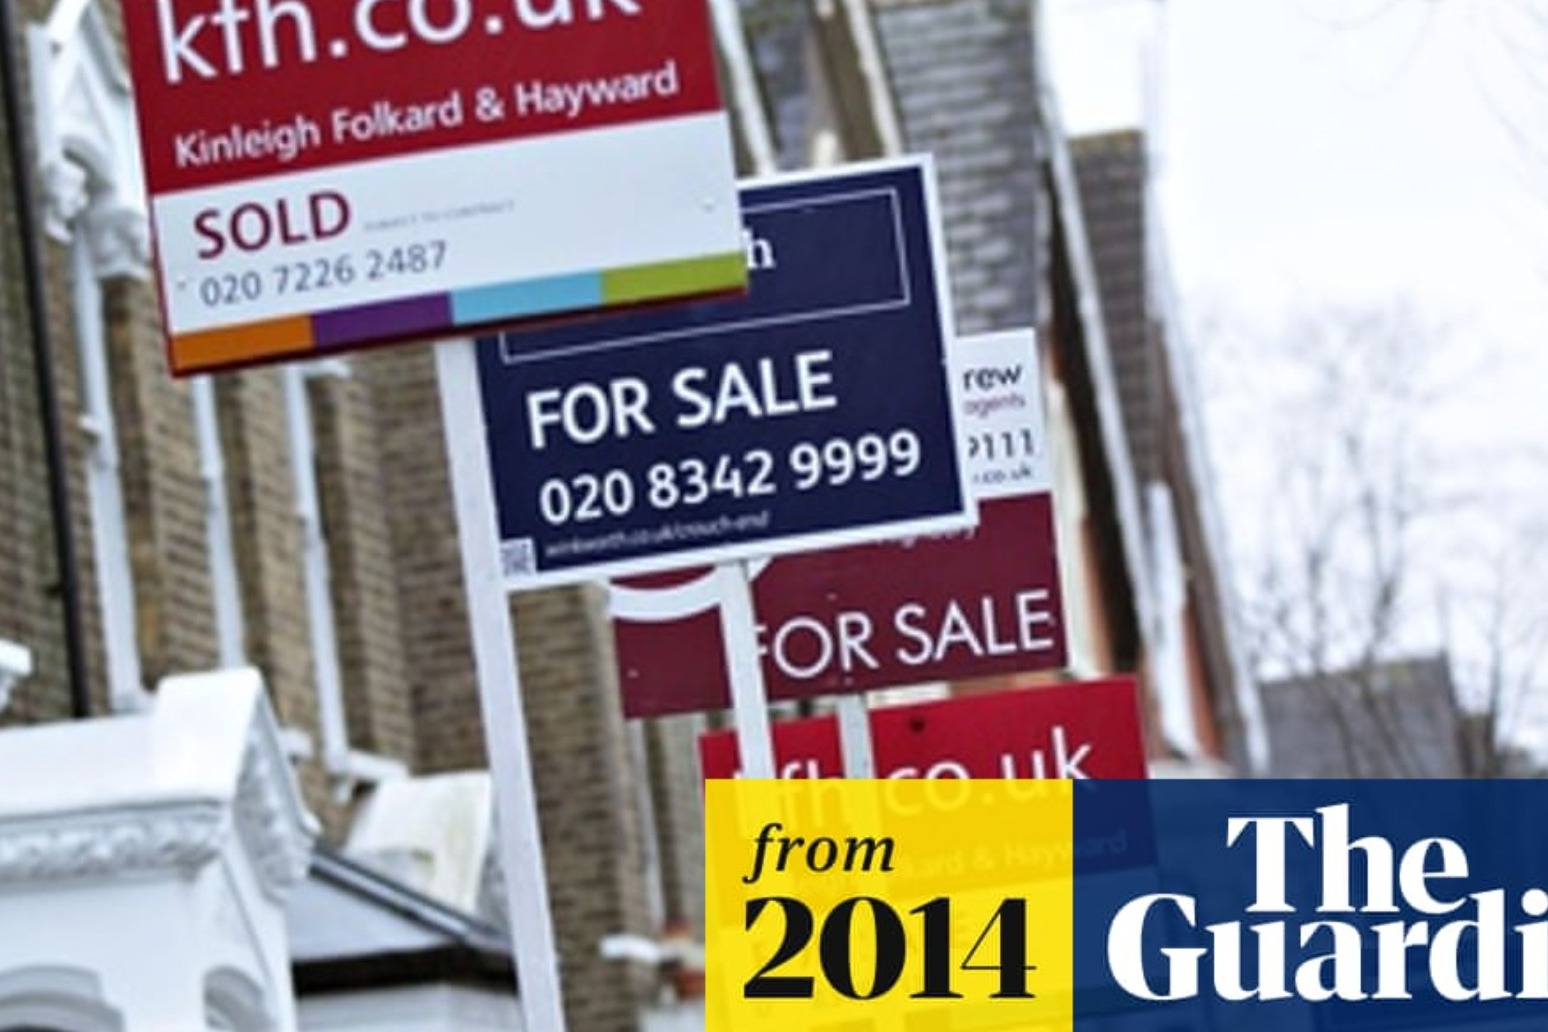 Blame stamp duty holiday for lost tax, not rising house prices